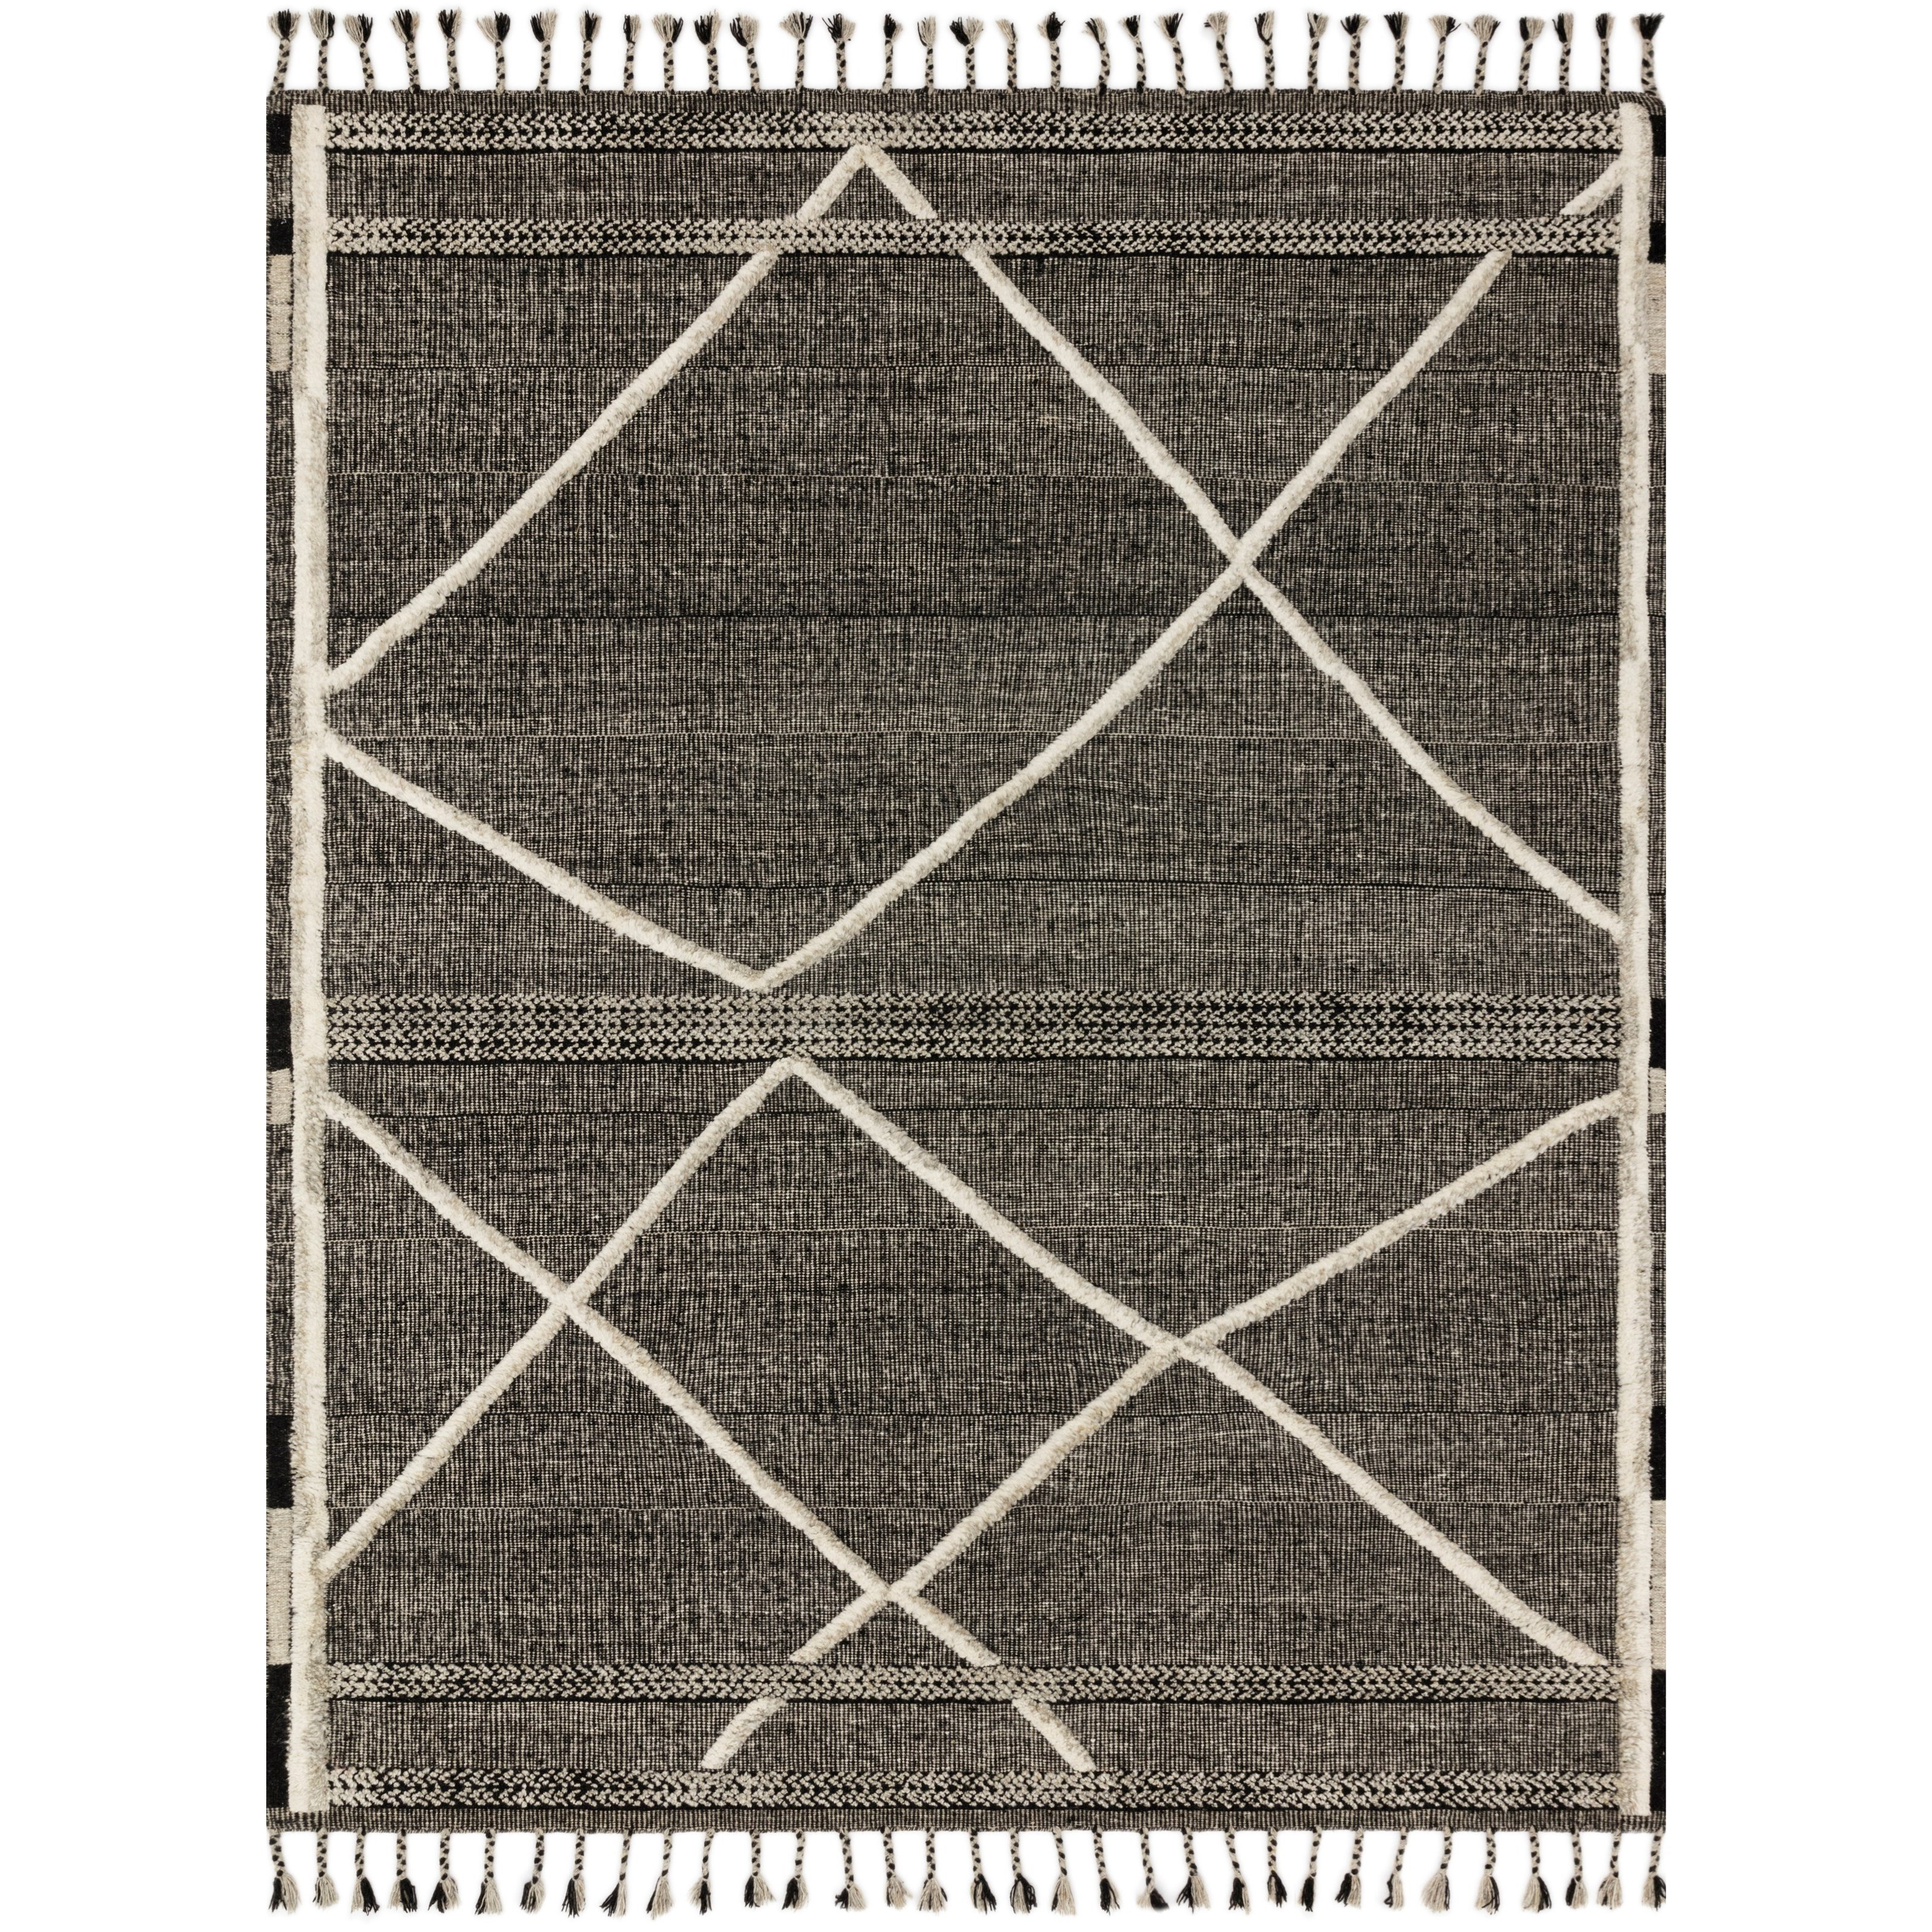 "Iman 5'6"" x 8'6"" Beige / Charcoal Rug by Loloi Rugs at Virginia Furniture Market"